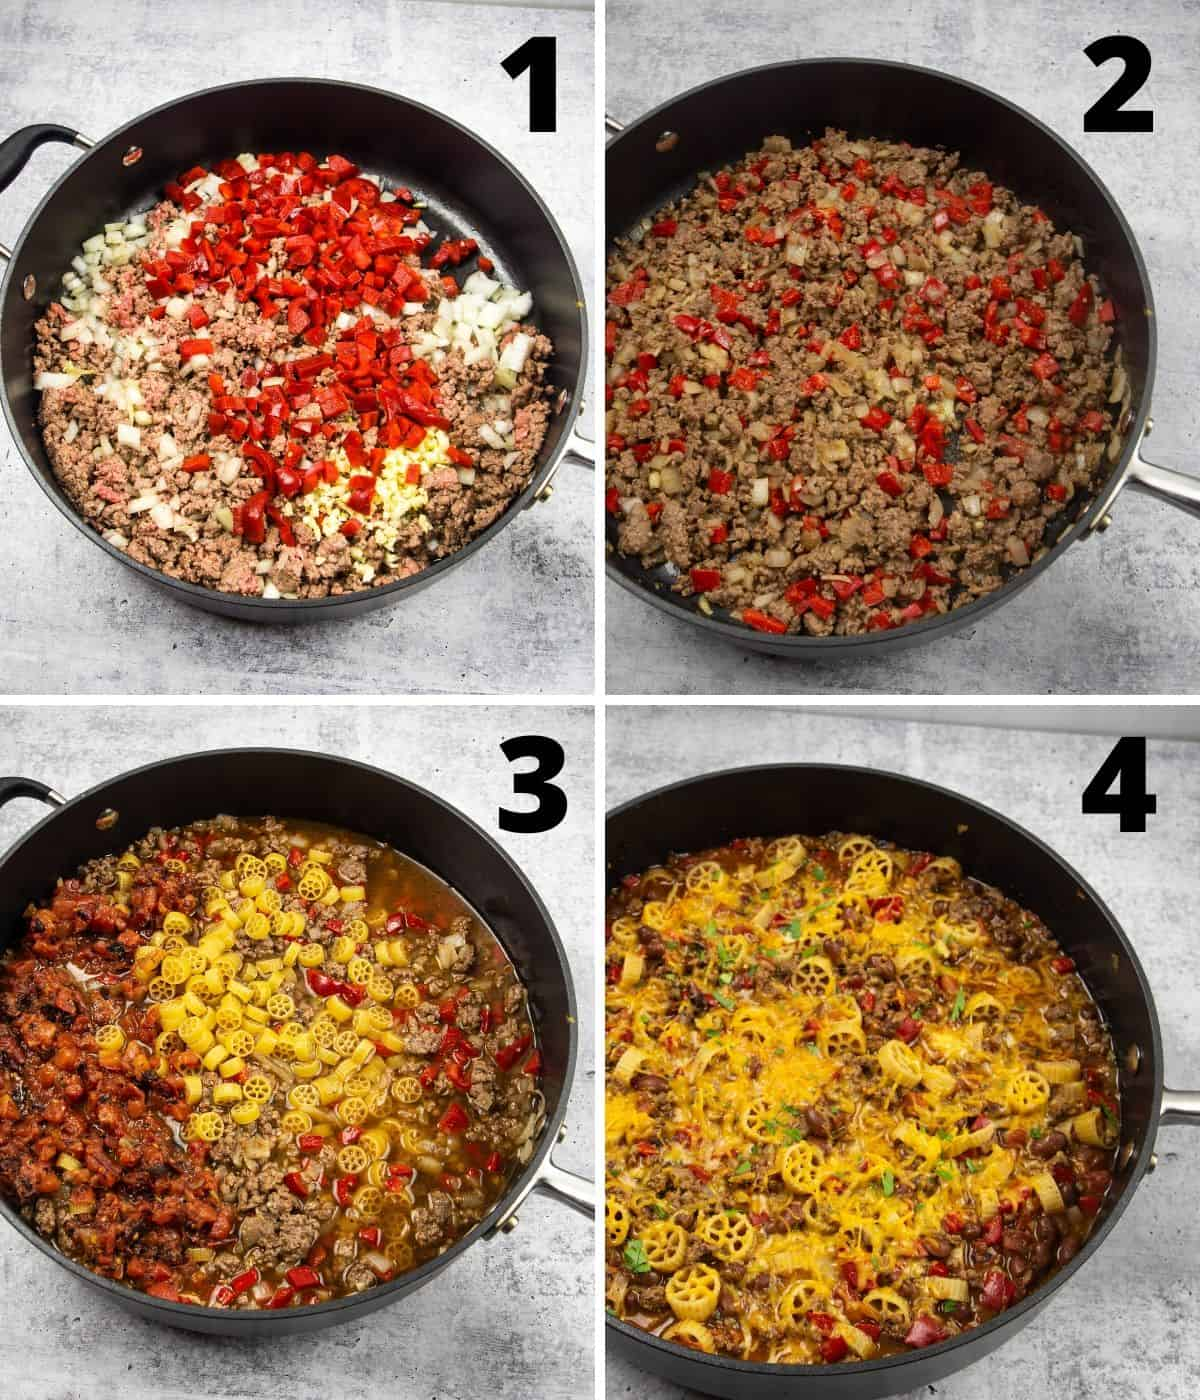 Step by step instructions on how to make a chili mac recipe